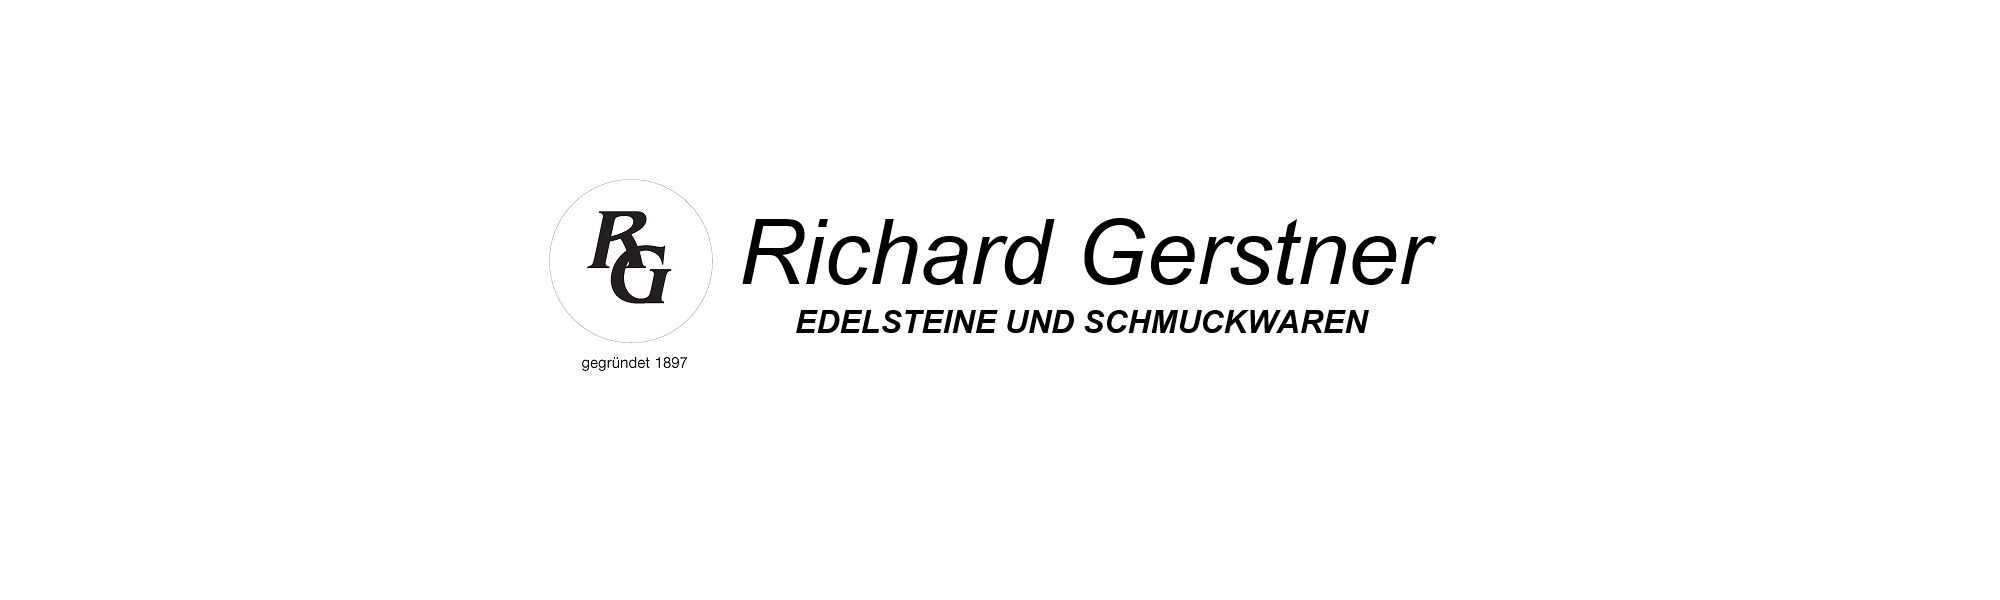 Richard Gerstner